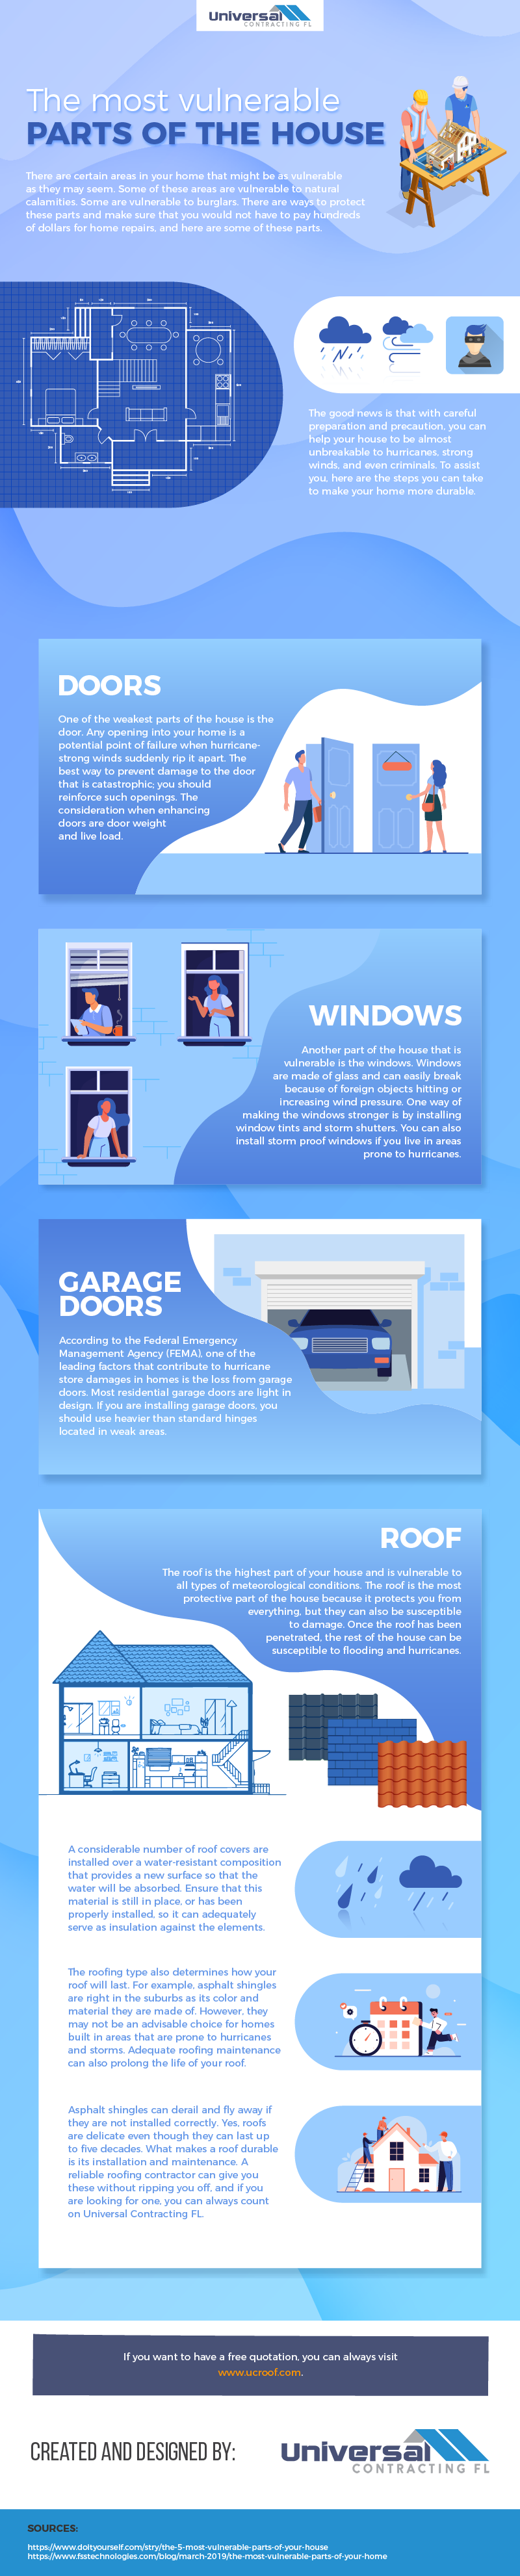 The most vulnerable parts of the house Infographic